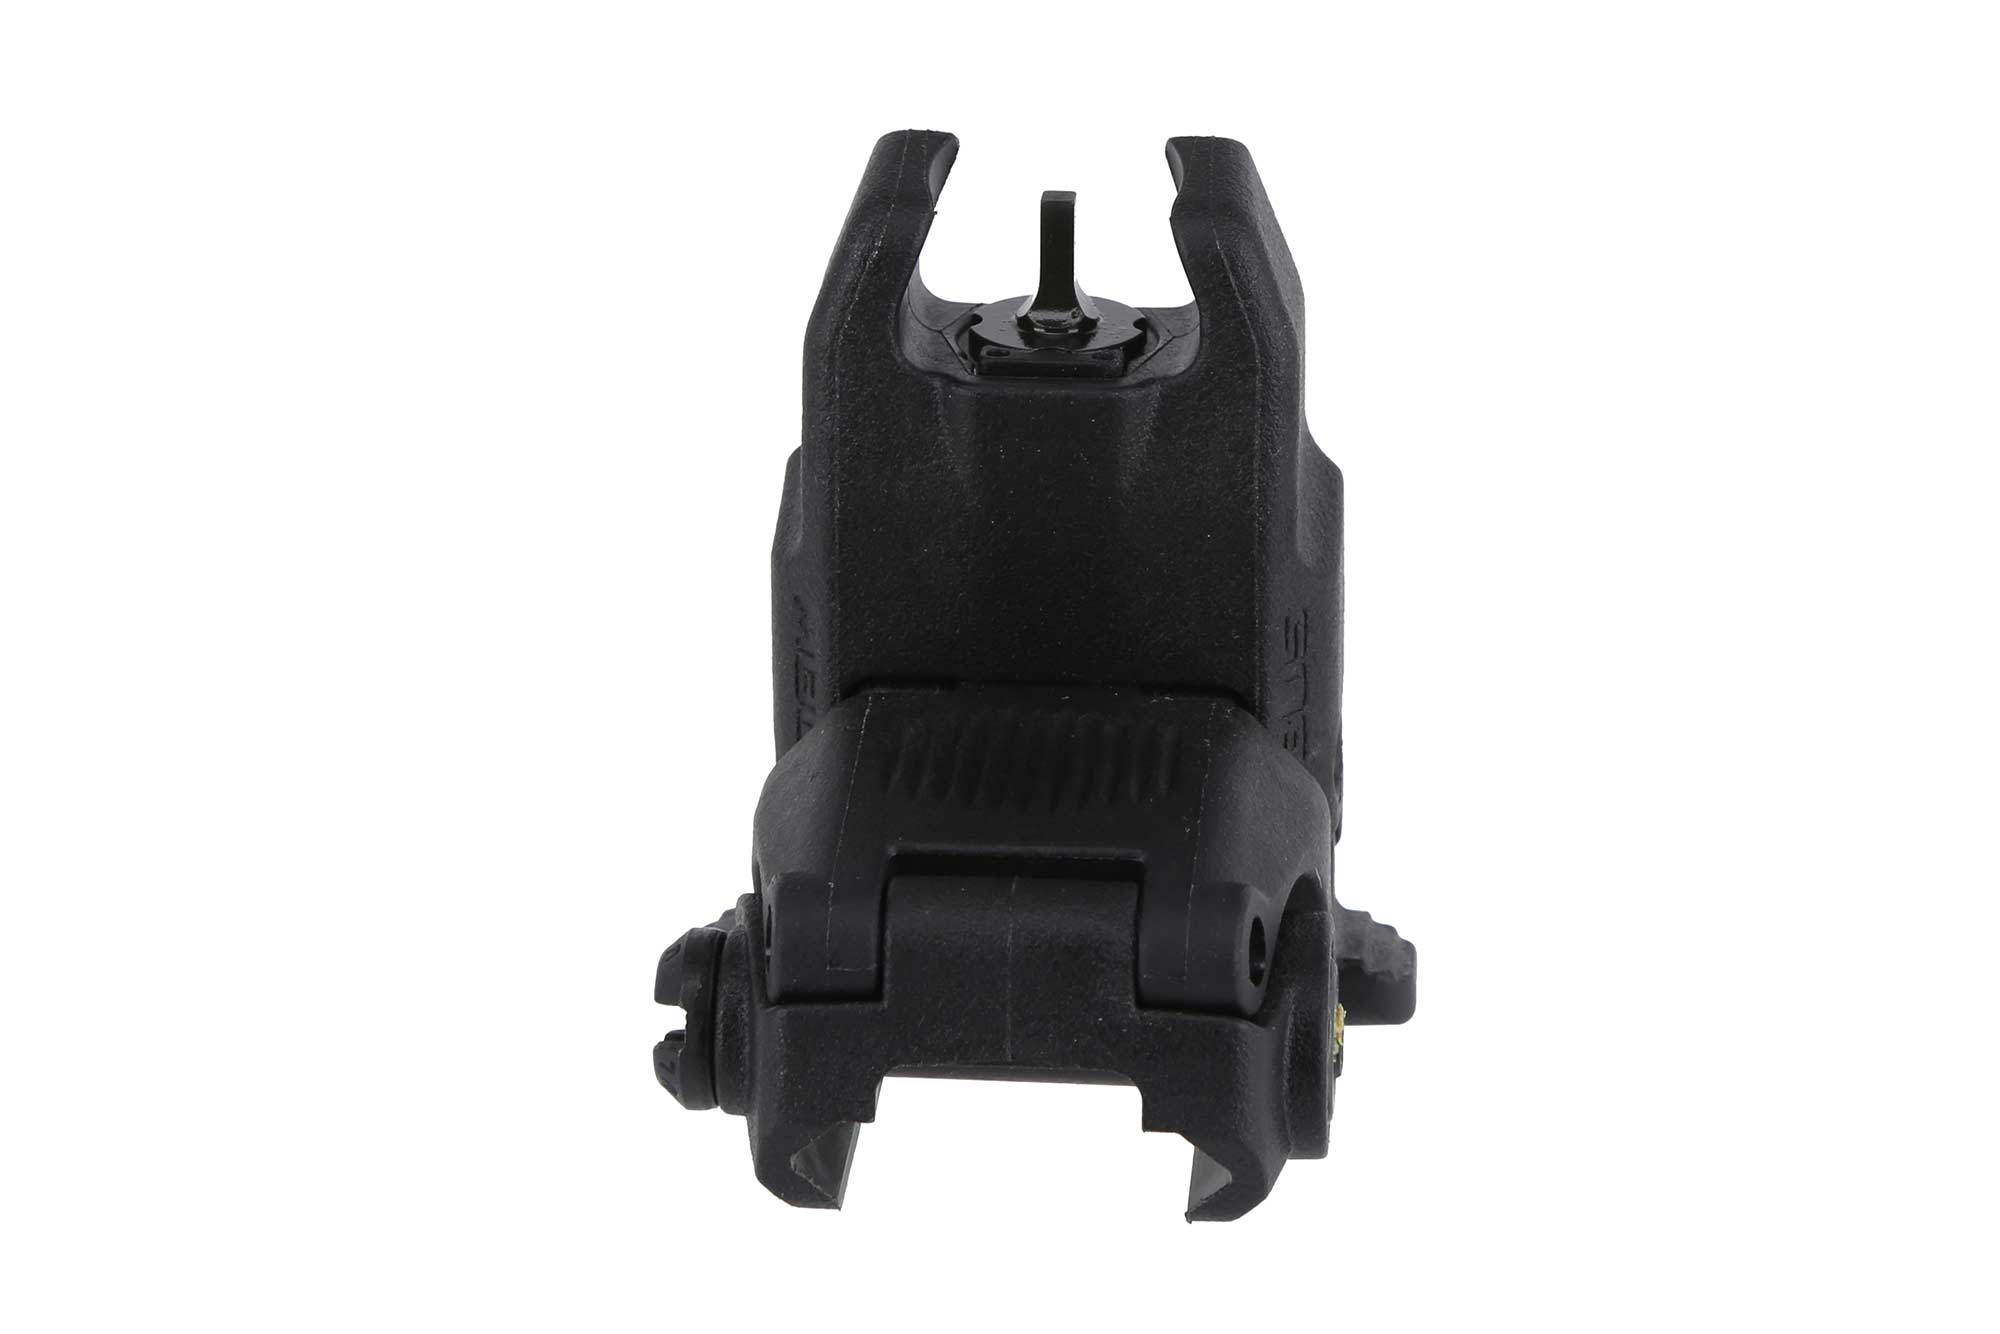 The Magpul Flip up front sight uses a spring and button mechanism for instant deployment